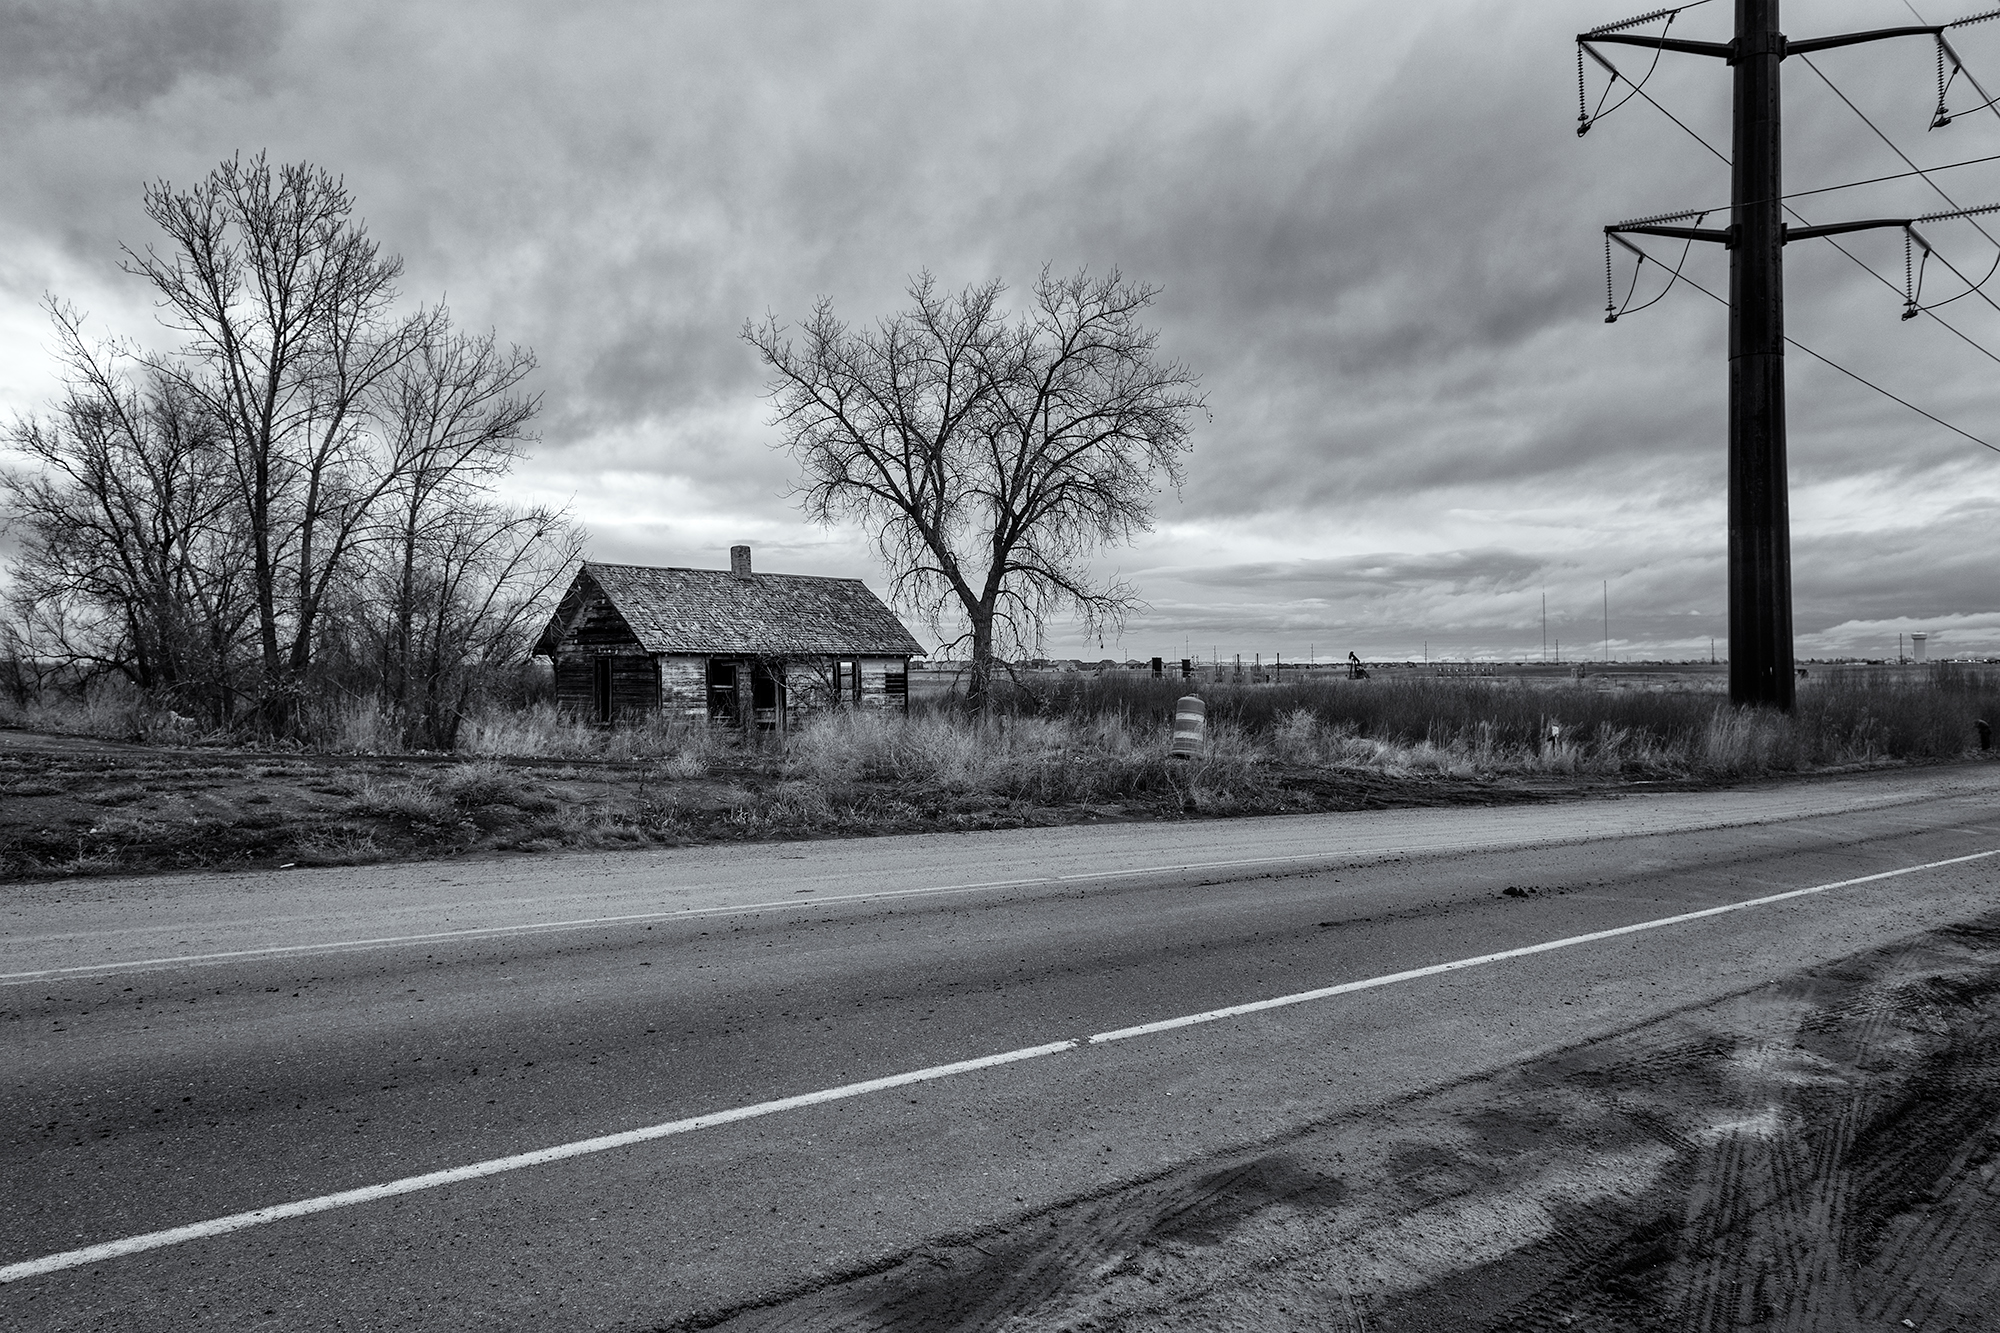 Abandoned Homestead, Grandview Blvd. Weld County, Colorado, 2016